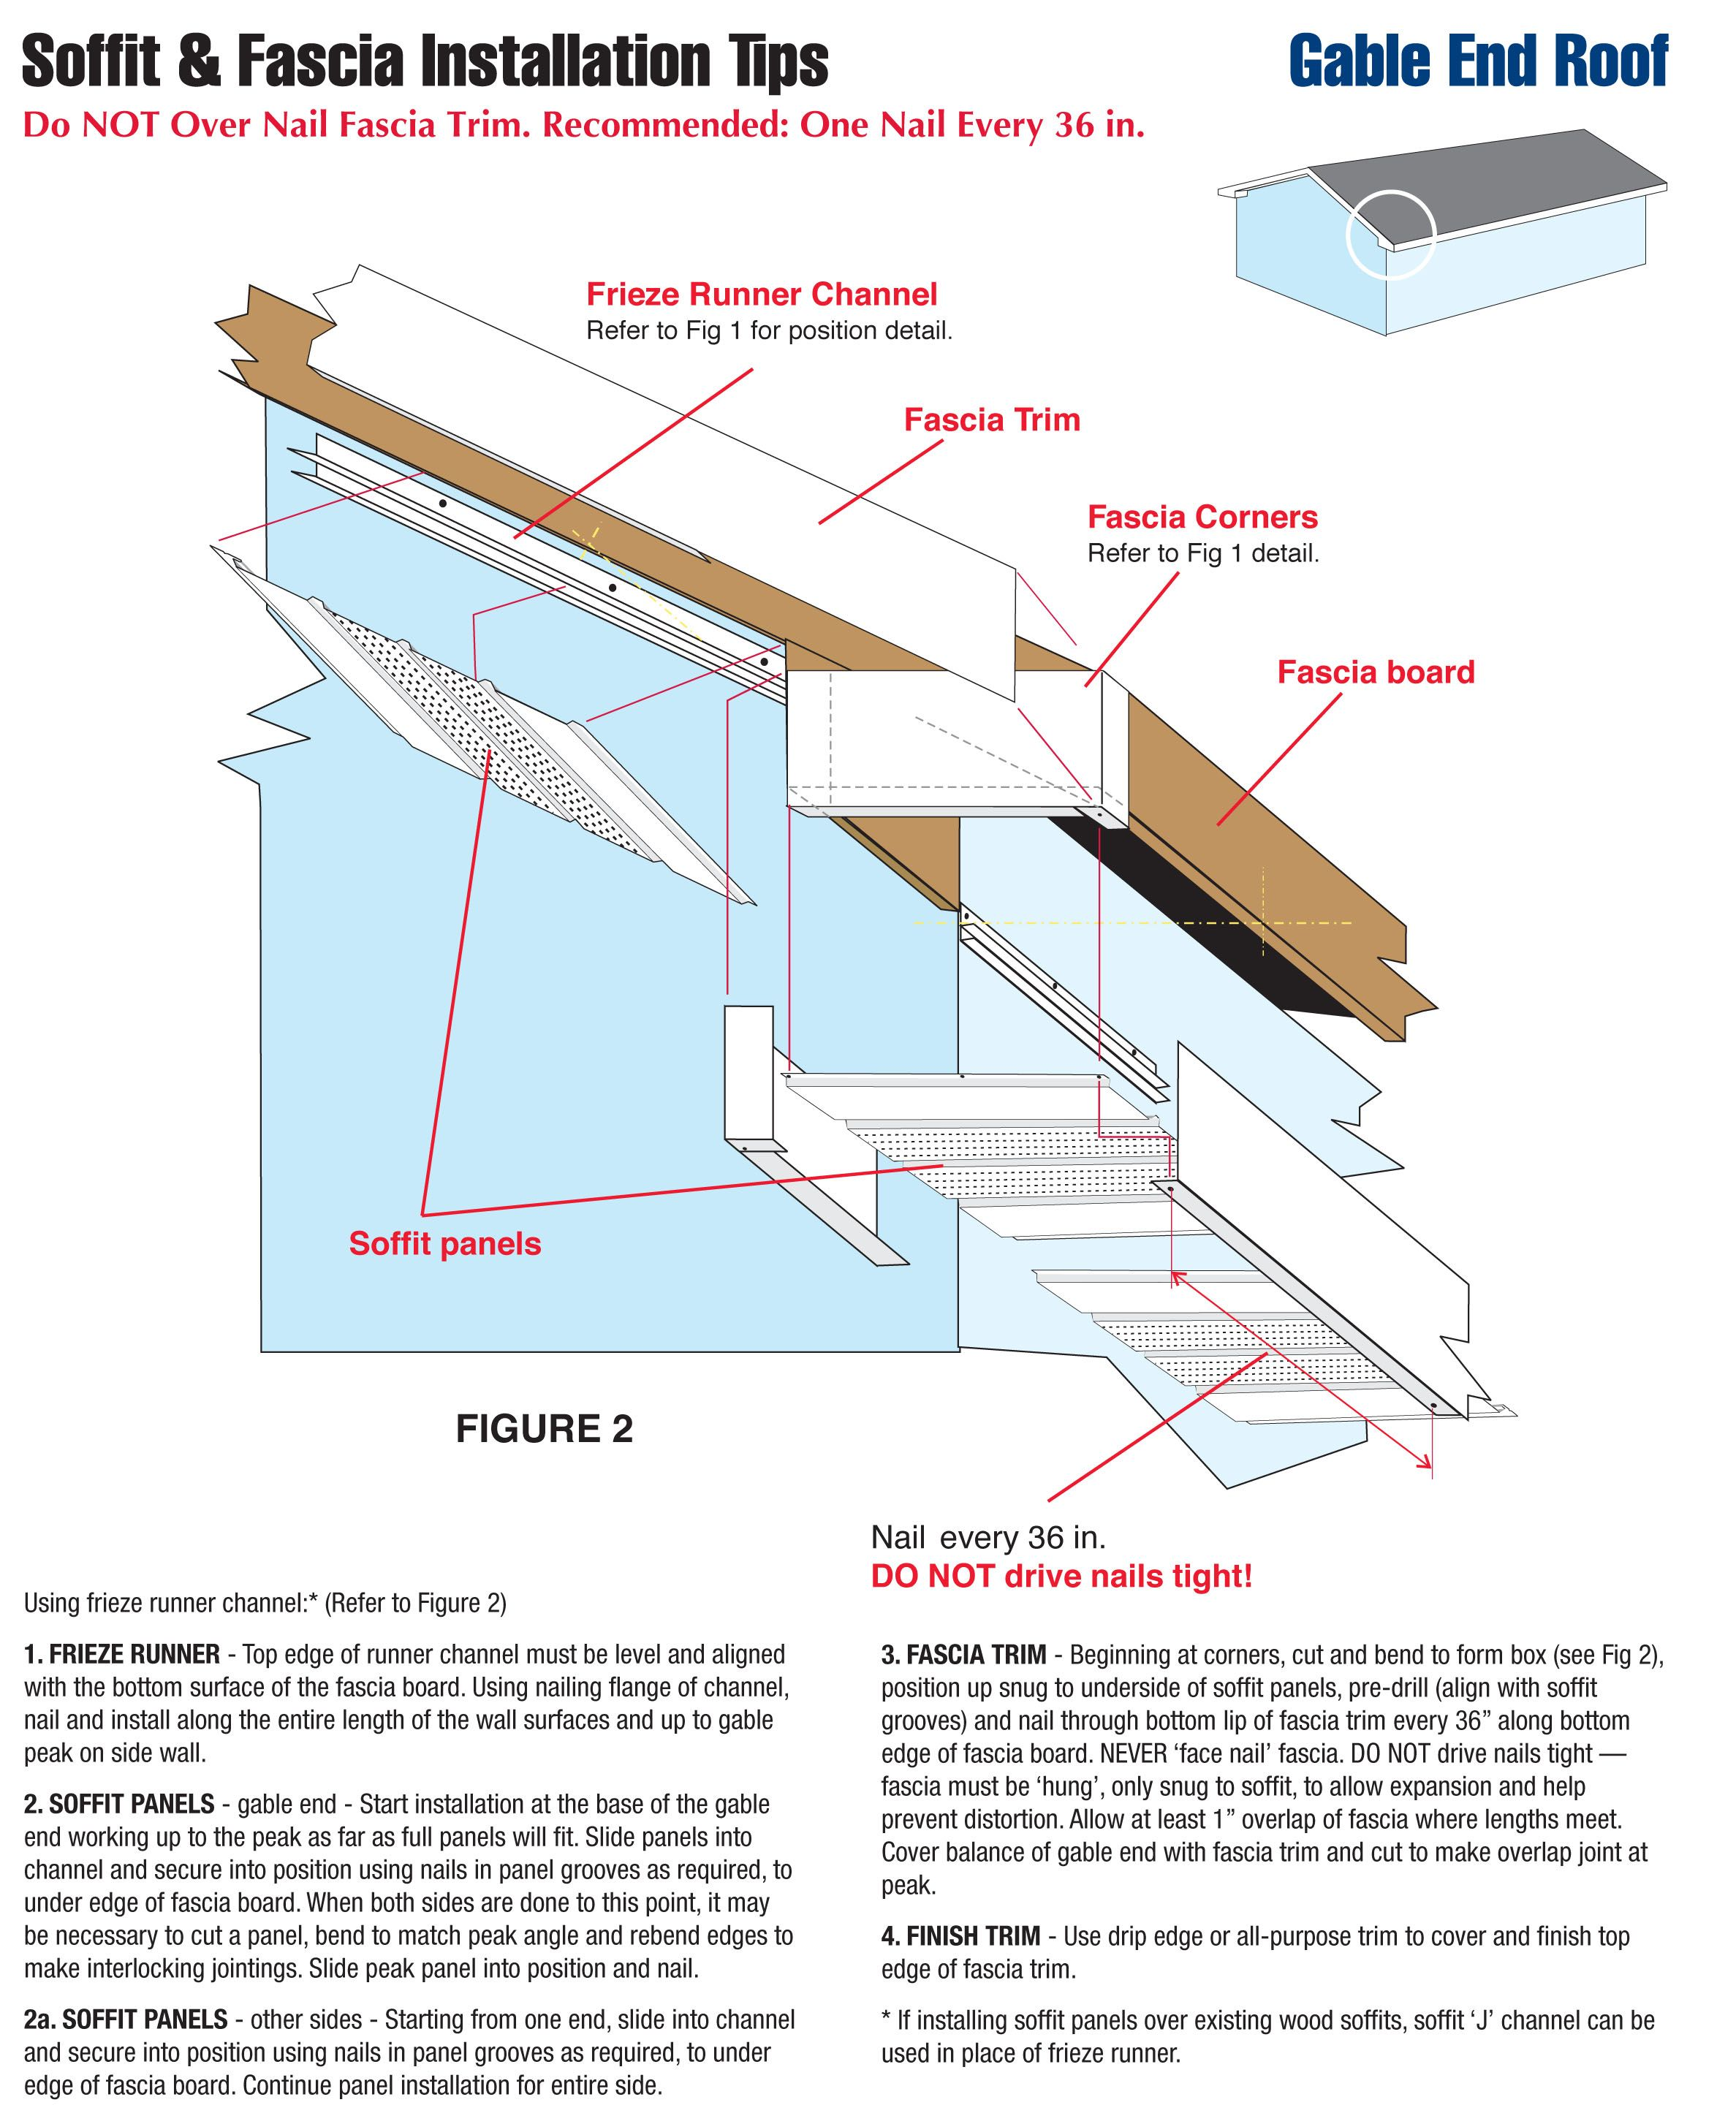 How to install soffit and fascia corner google search for Soffit and fascia calculator